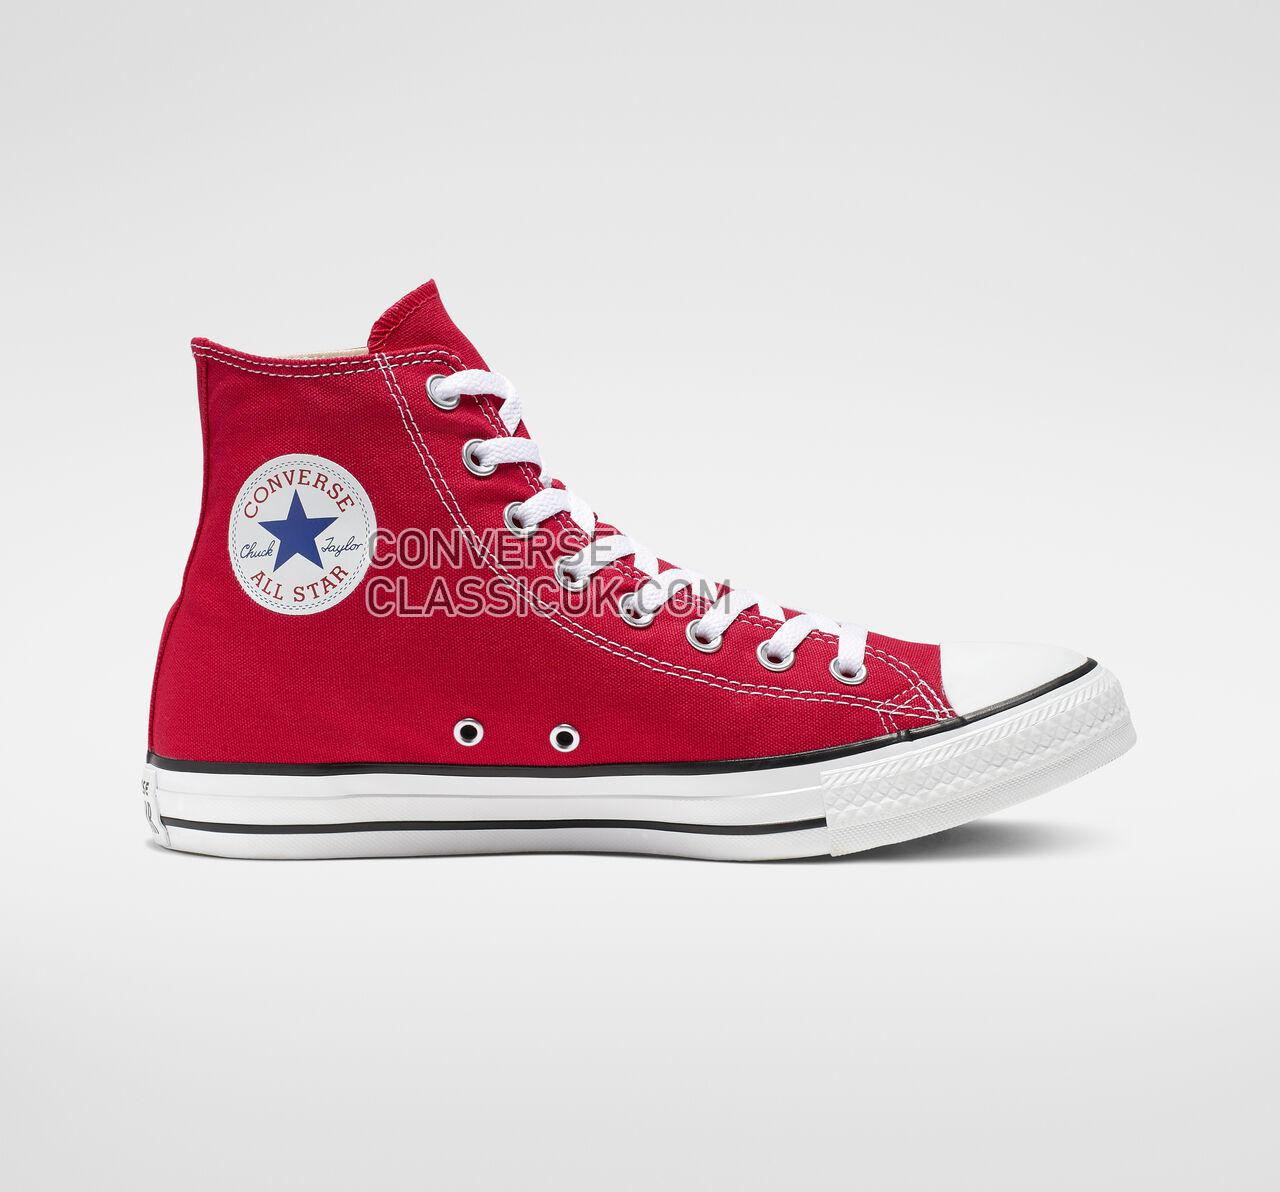 Converse Chuck Taylor All Star High Top Mens Womens Unisex M9621 Red Shoes